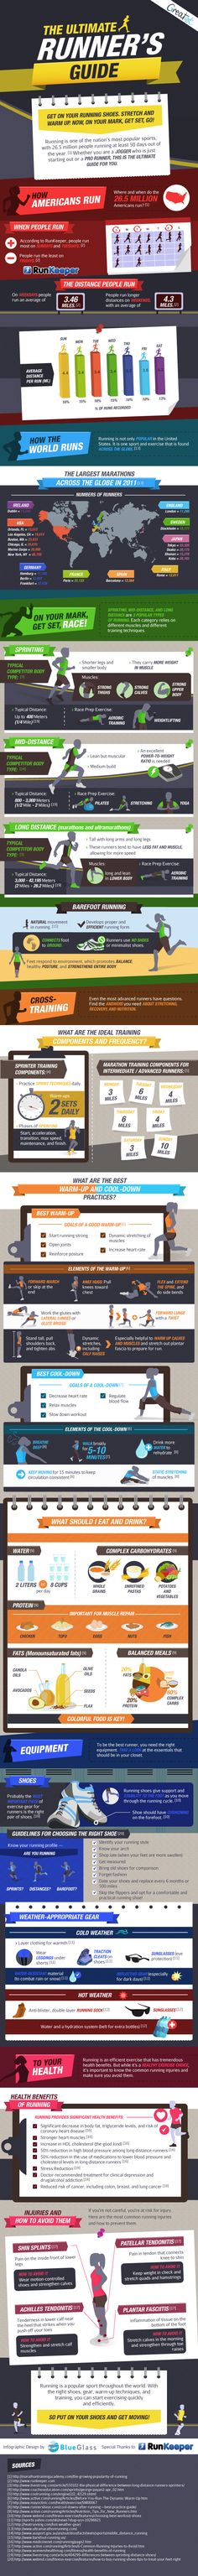 The Ultimate Runner's Guide (Infographic). Our Ultimate Runner's Guide has all the necessary info to keep you going strong, from warm-ups and racing tips to equipment and training. Running Workouts, Running Tips, Running Facts, Start Running, Running Training, Running Outfits, Running Routine, Interval Running, Running Form